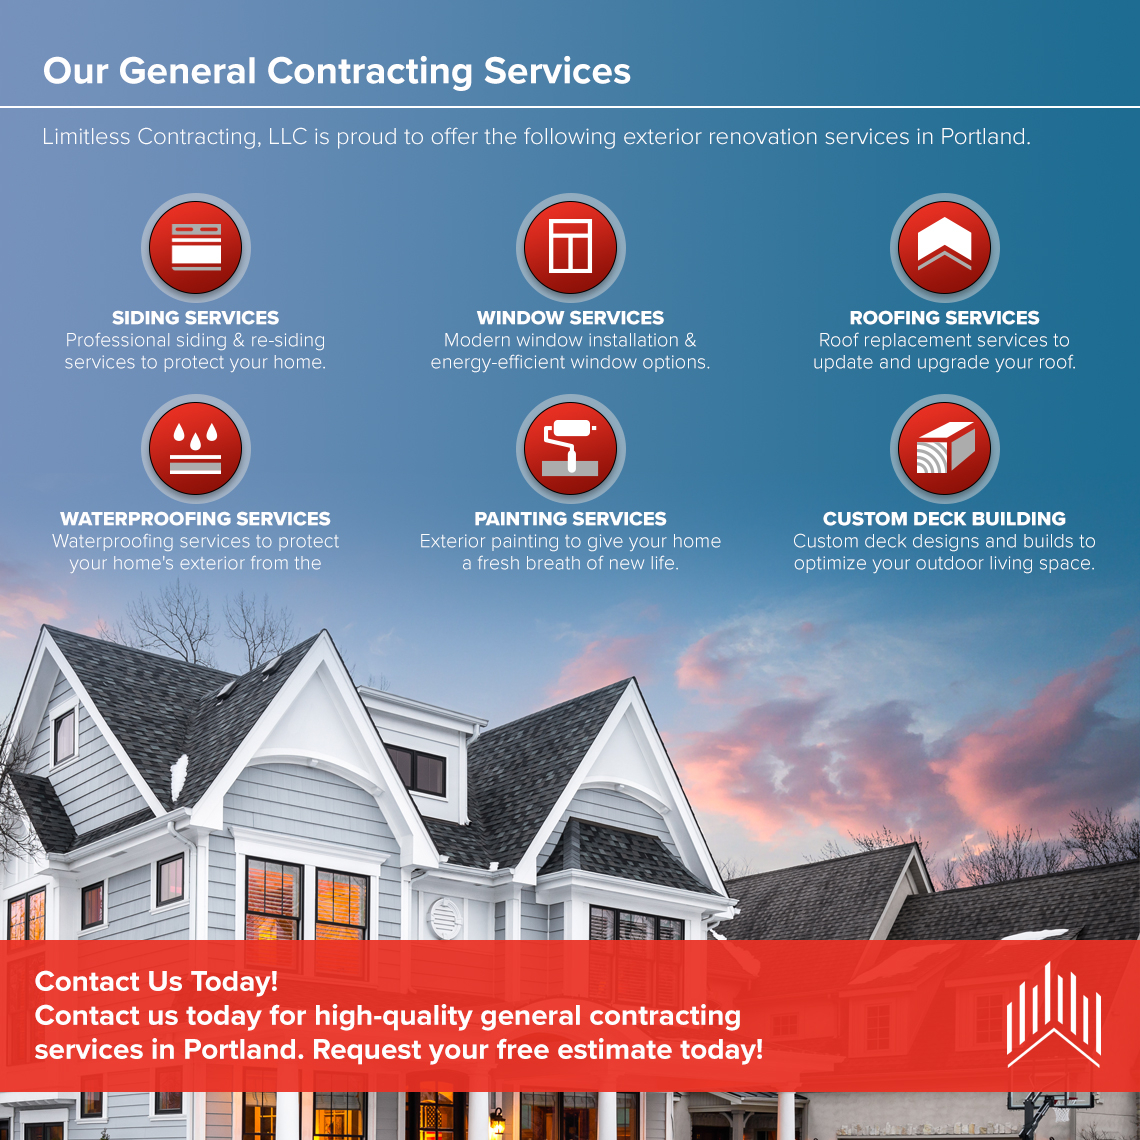 Infographic-Our-General-Contracting-Services.jpg